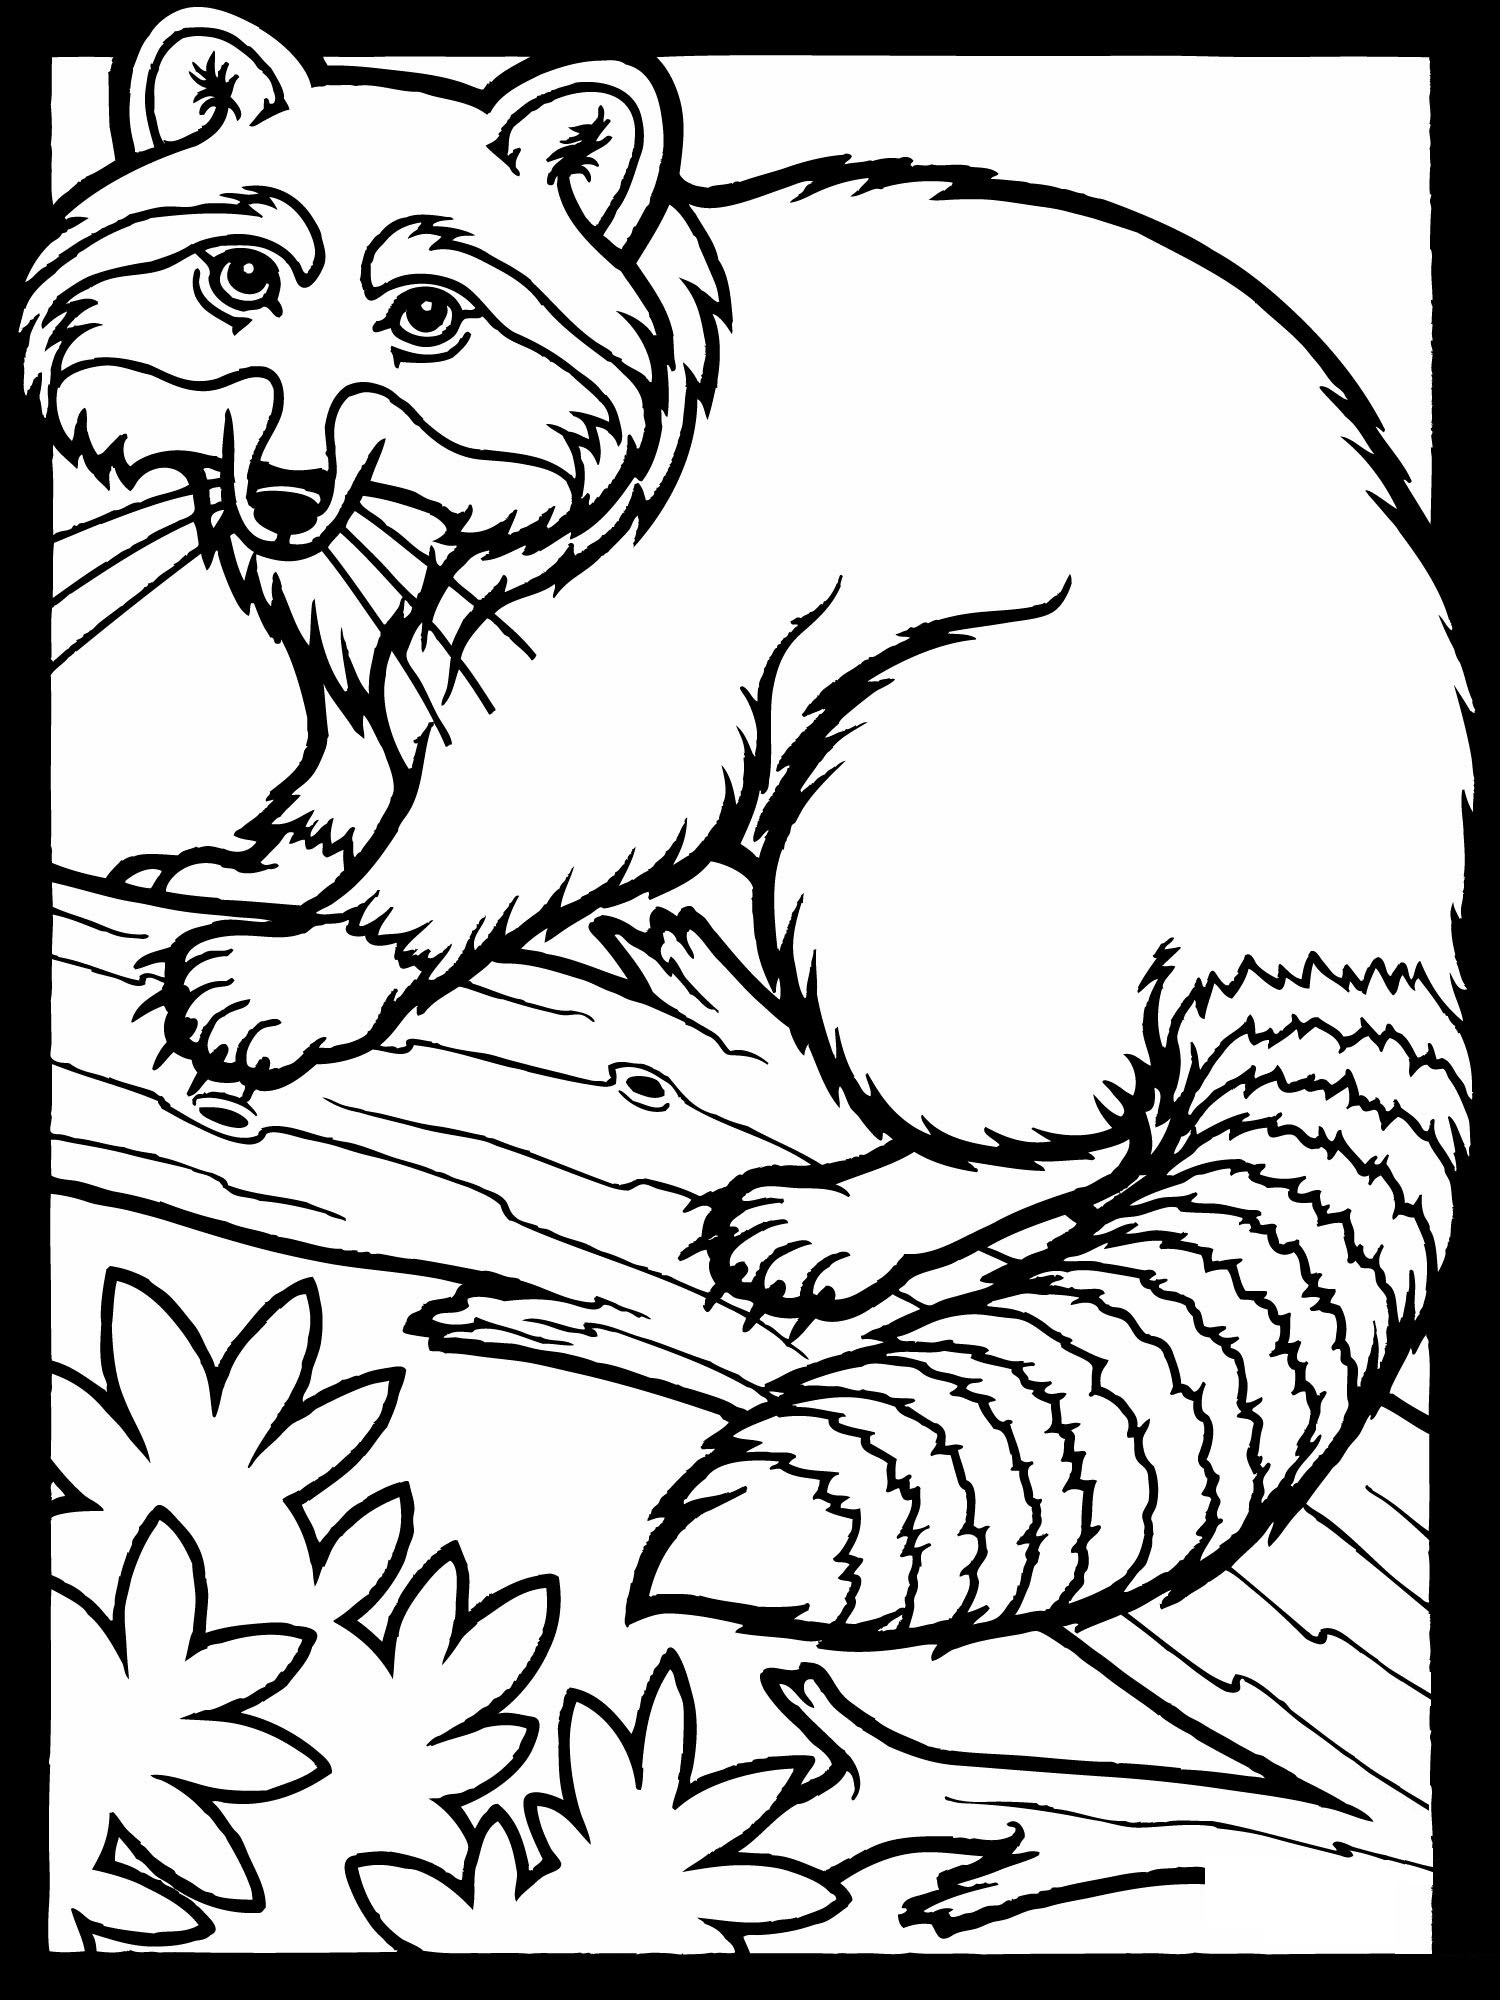 Raccoon coloring pages free printable